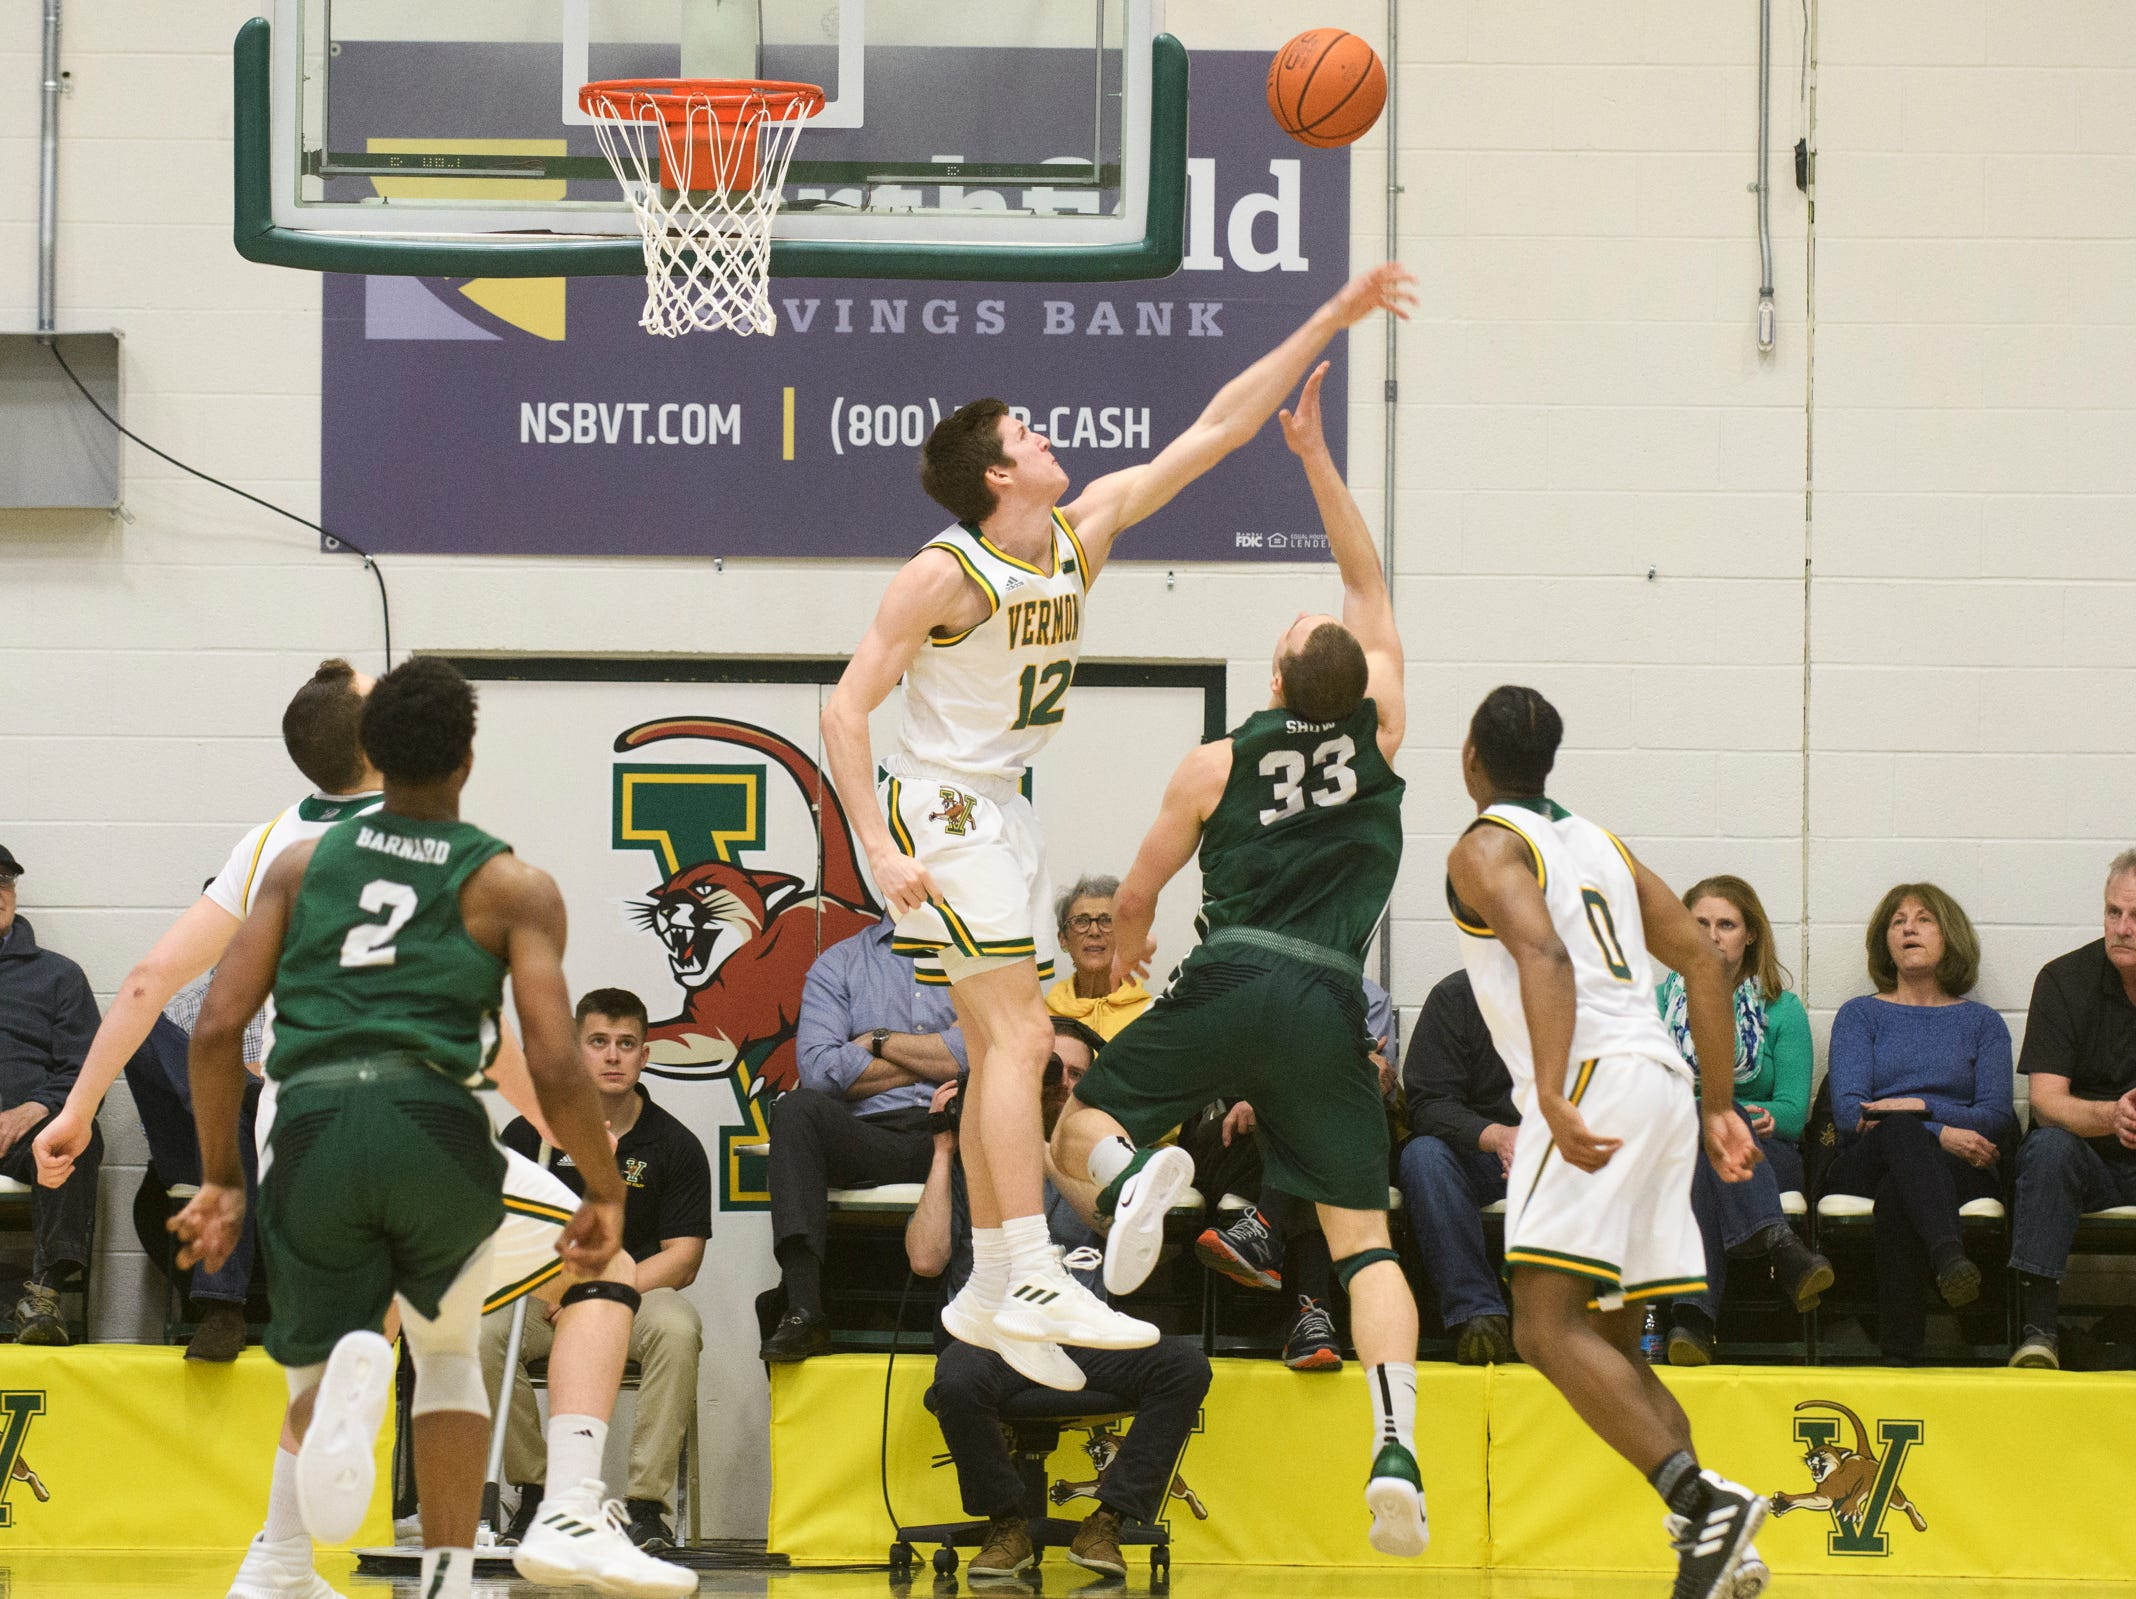 Vermont forward Bailey Patella (12) blocks the shot by Binghamton's J.C. Show (33) during the America East semifinal game between the Binghamton Bearcats and the Vermont Catamounts at Patrick Gym on Tuesday March 12, 2019 in Burlington, Vermont.